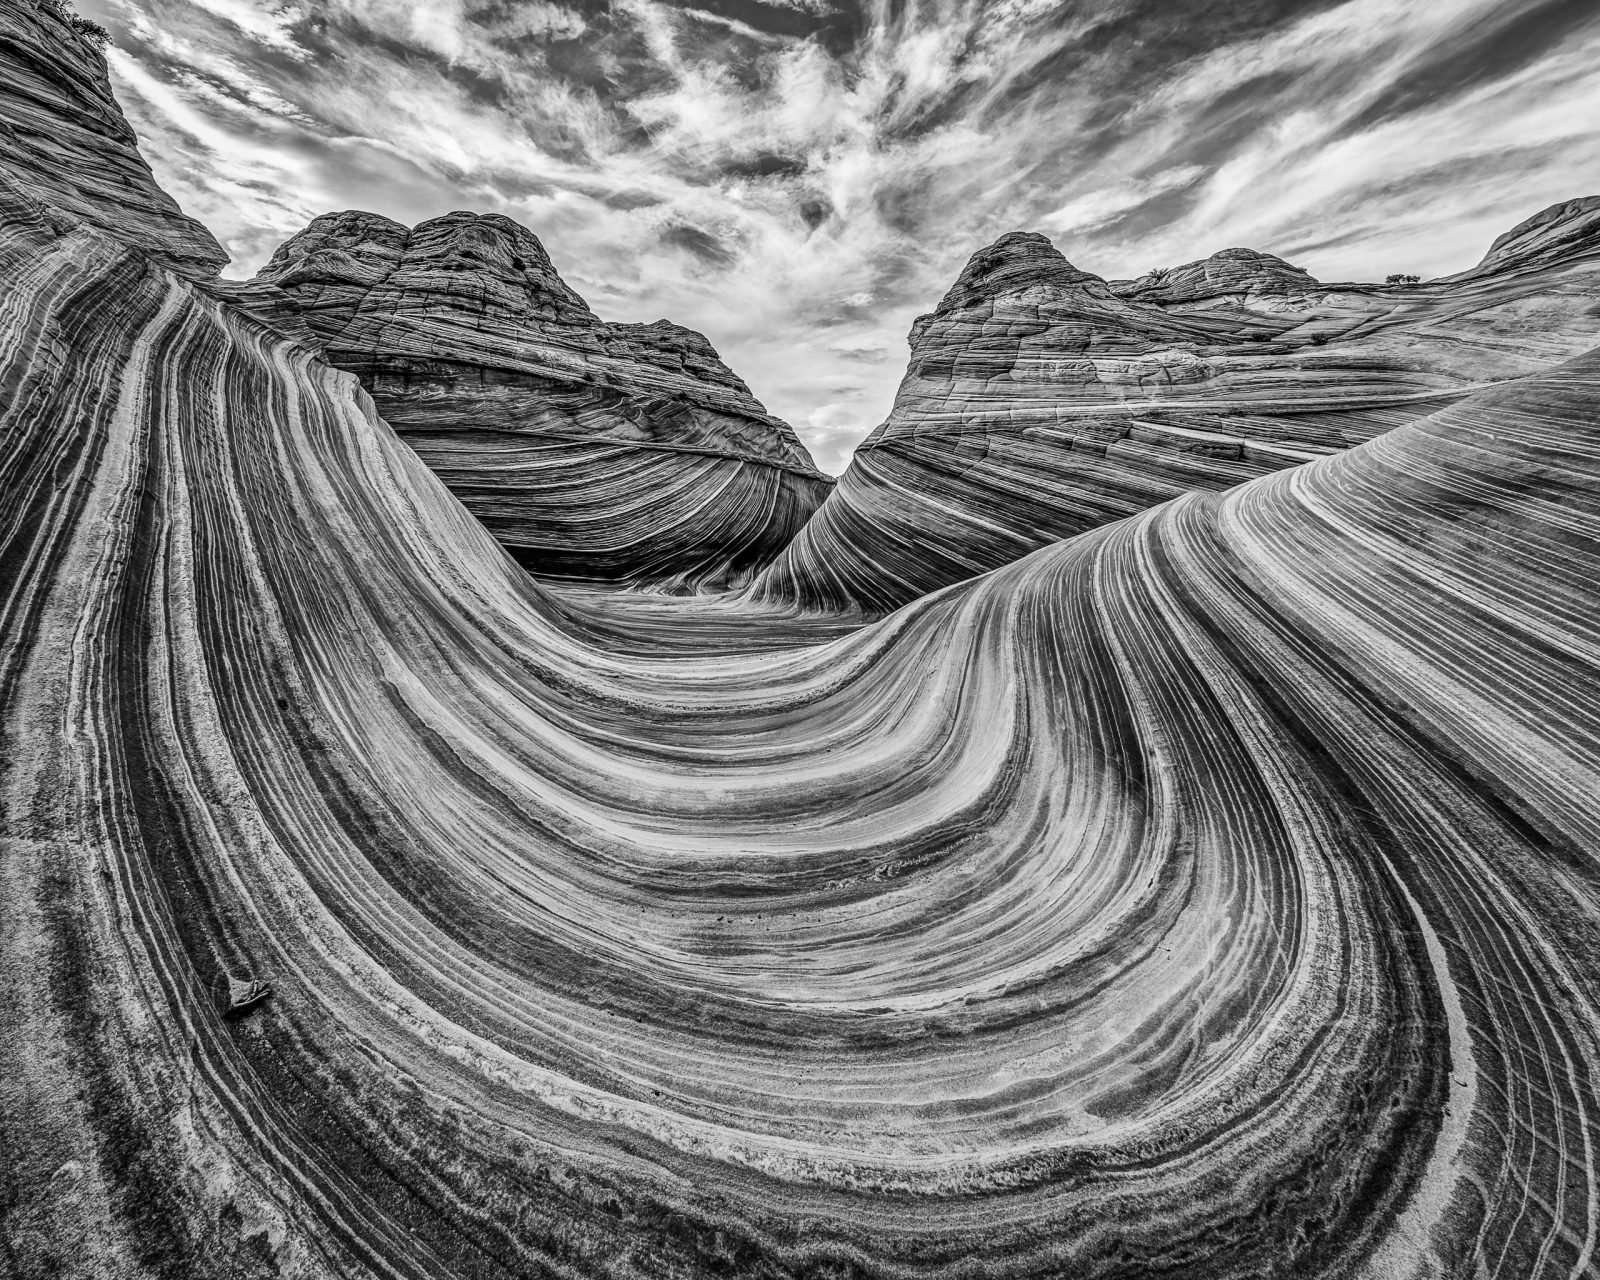 The Wave in Black and White